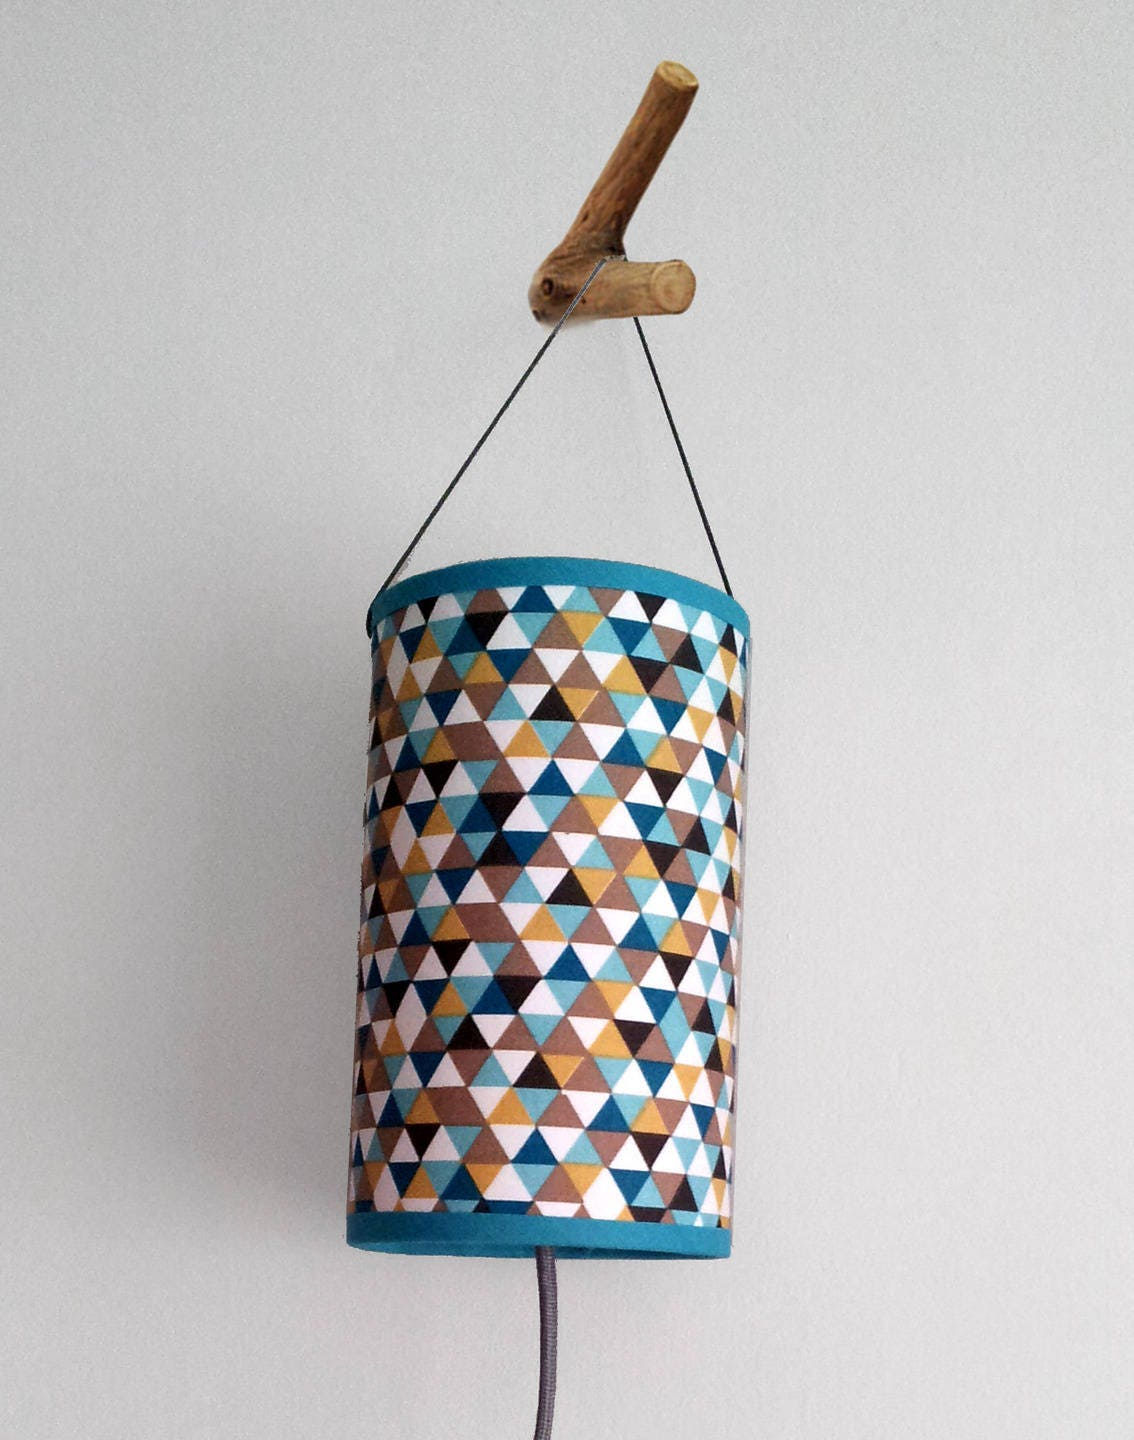 lampe baladeuse motif vintage triangles bleu canard et. Black Bedroom Furniture Sets. Home Design Ideas